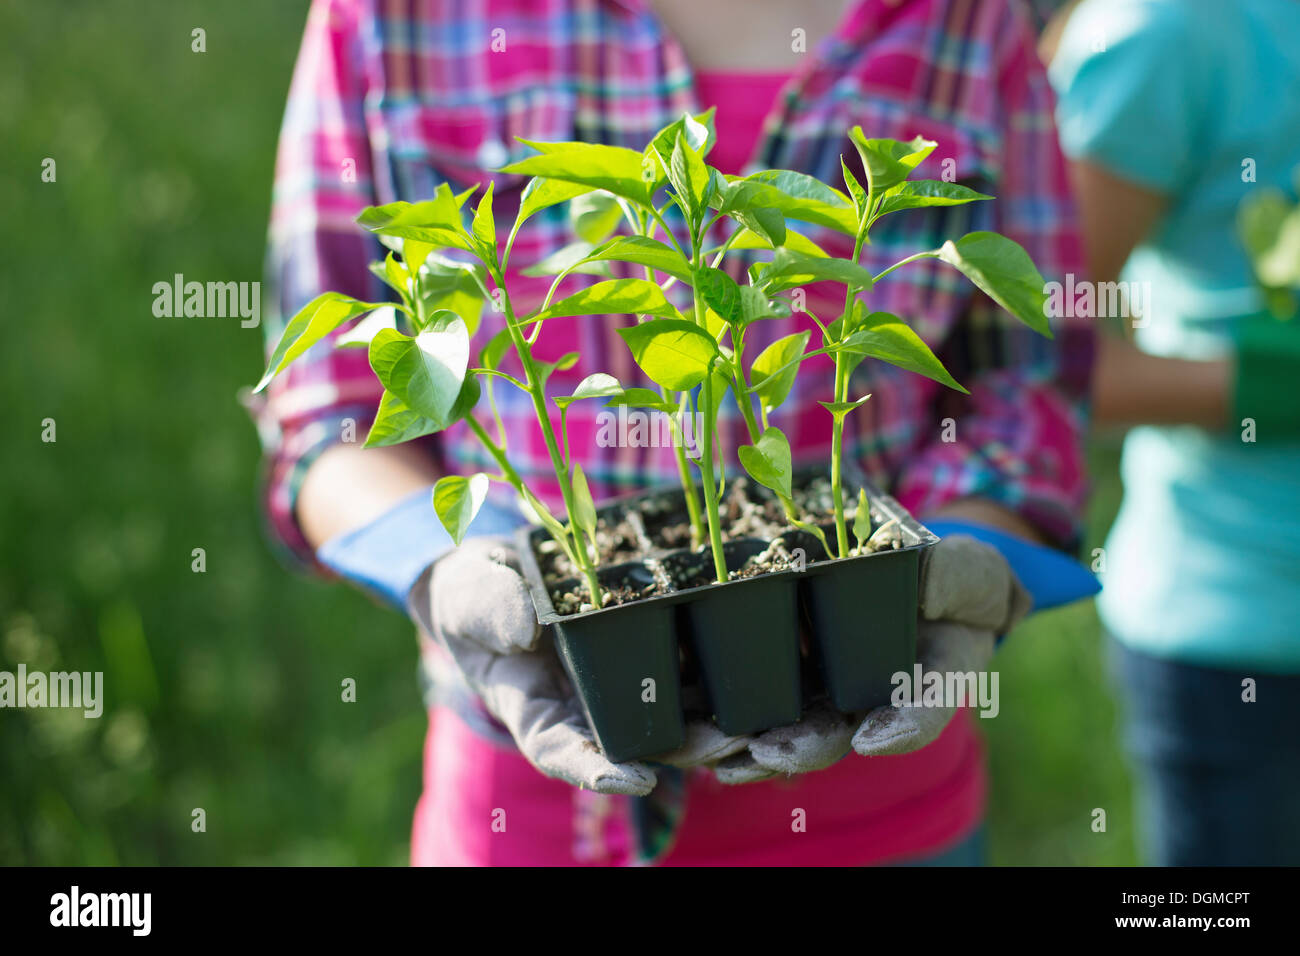 Organic farm. Summer party. A young girl holding a tray of young rooted seedlings. - Stock Image